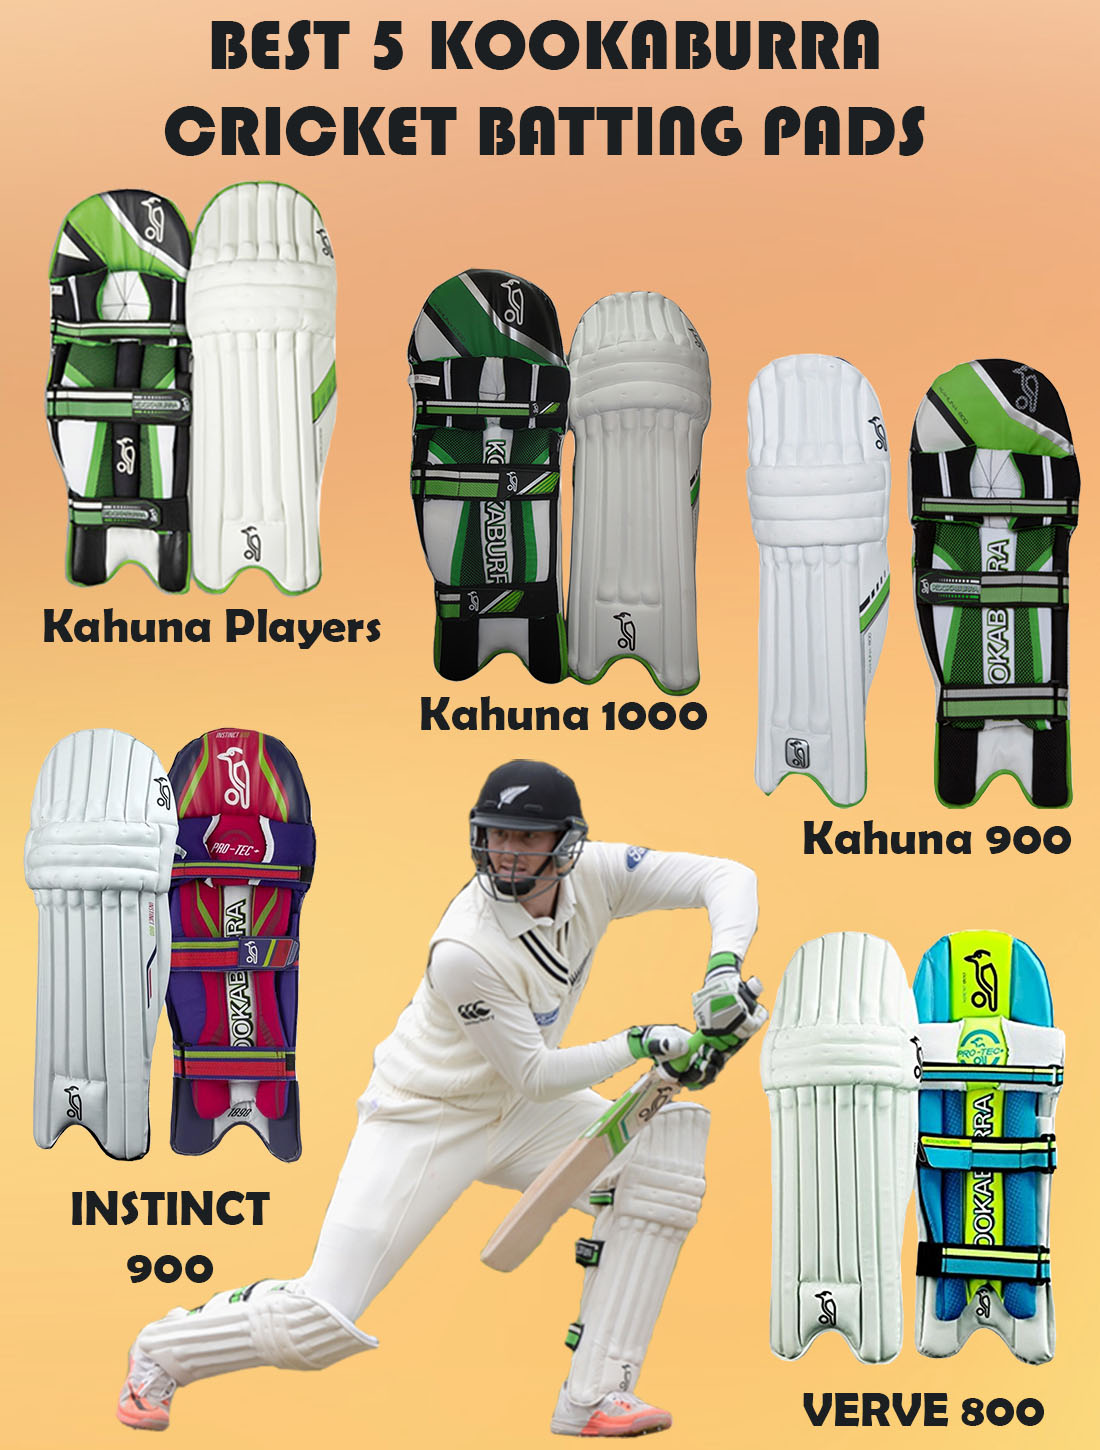 BEST 5 KOOKABURRA BATTING PADS IMAGE